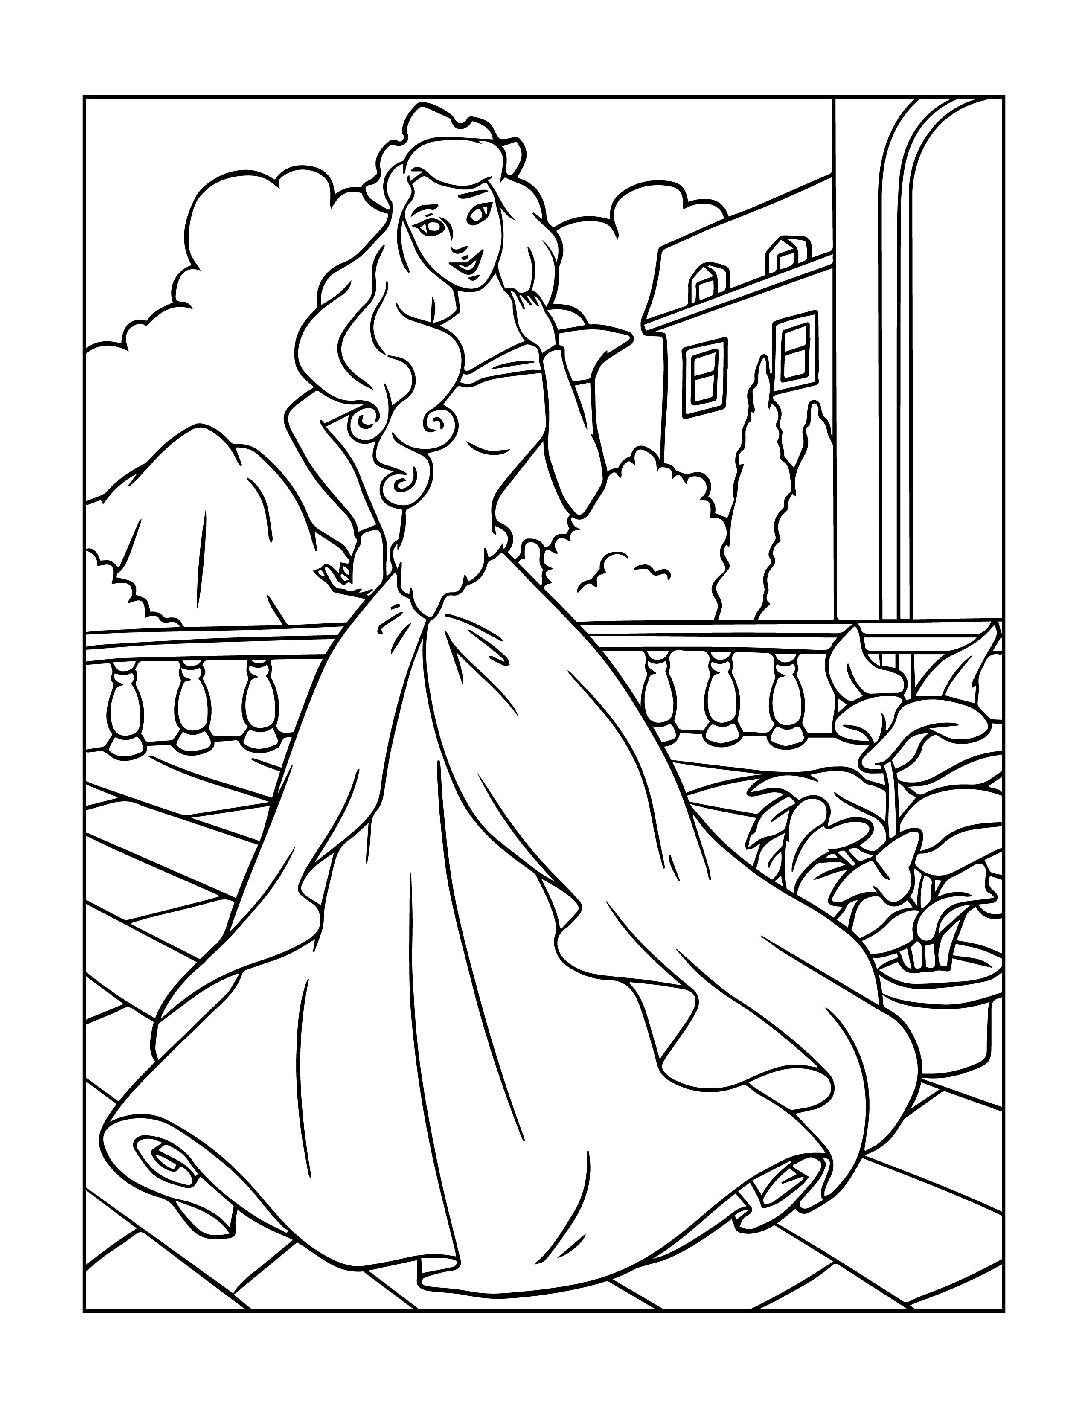 Coloring-Pages-Princess-8-01-pdf Free Printable Princesses Colouring Pages